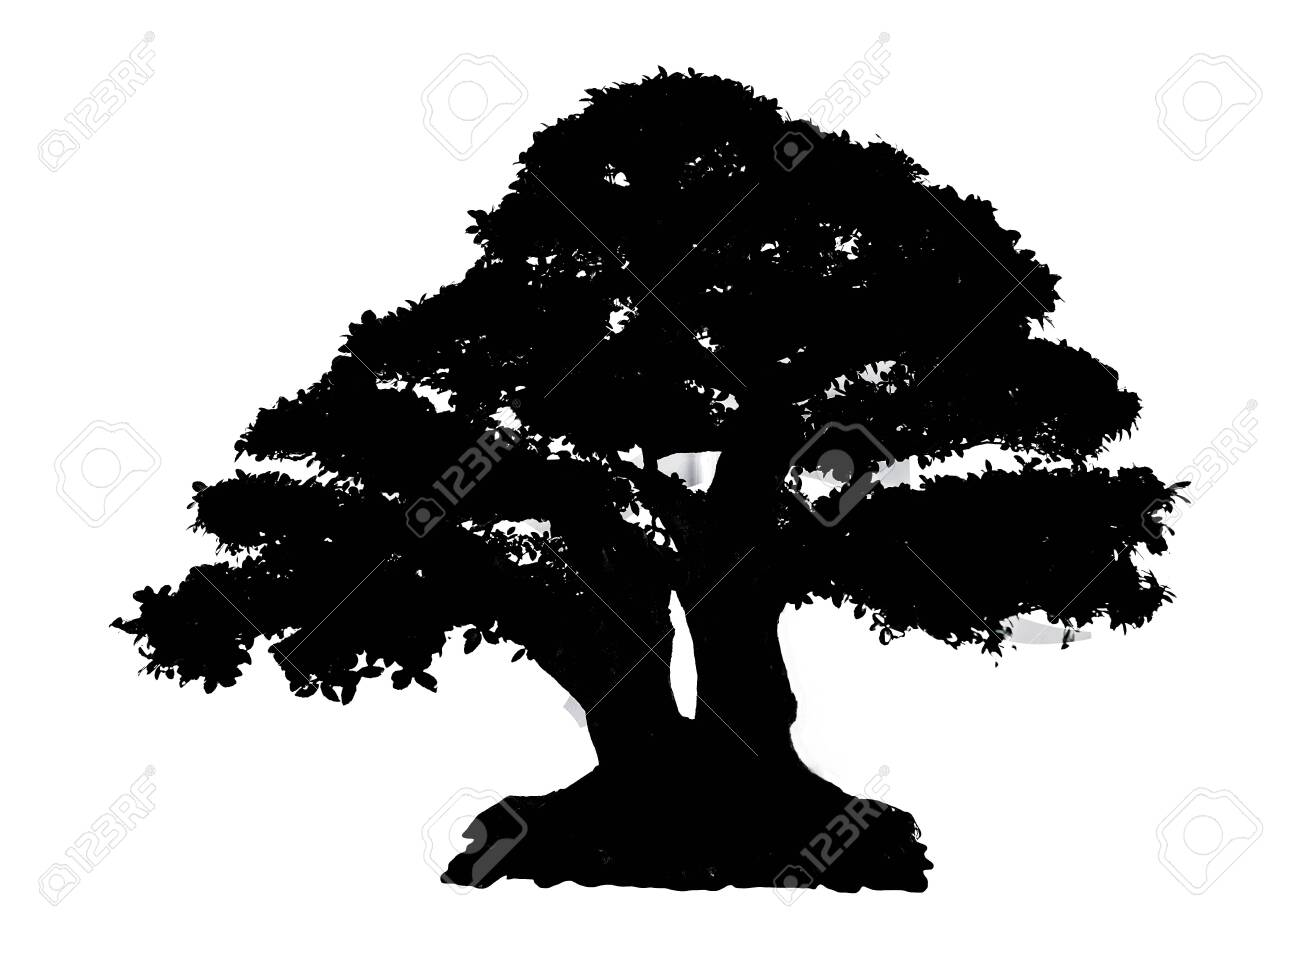 Black Silhouette Tree Isolated on white background - 138348290